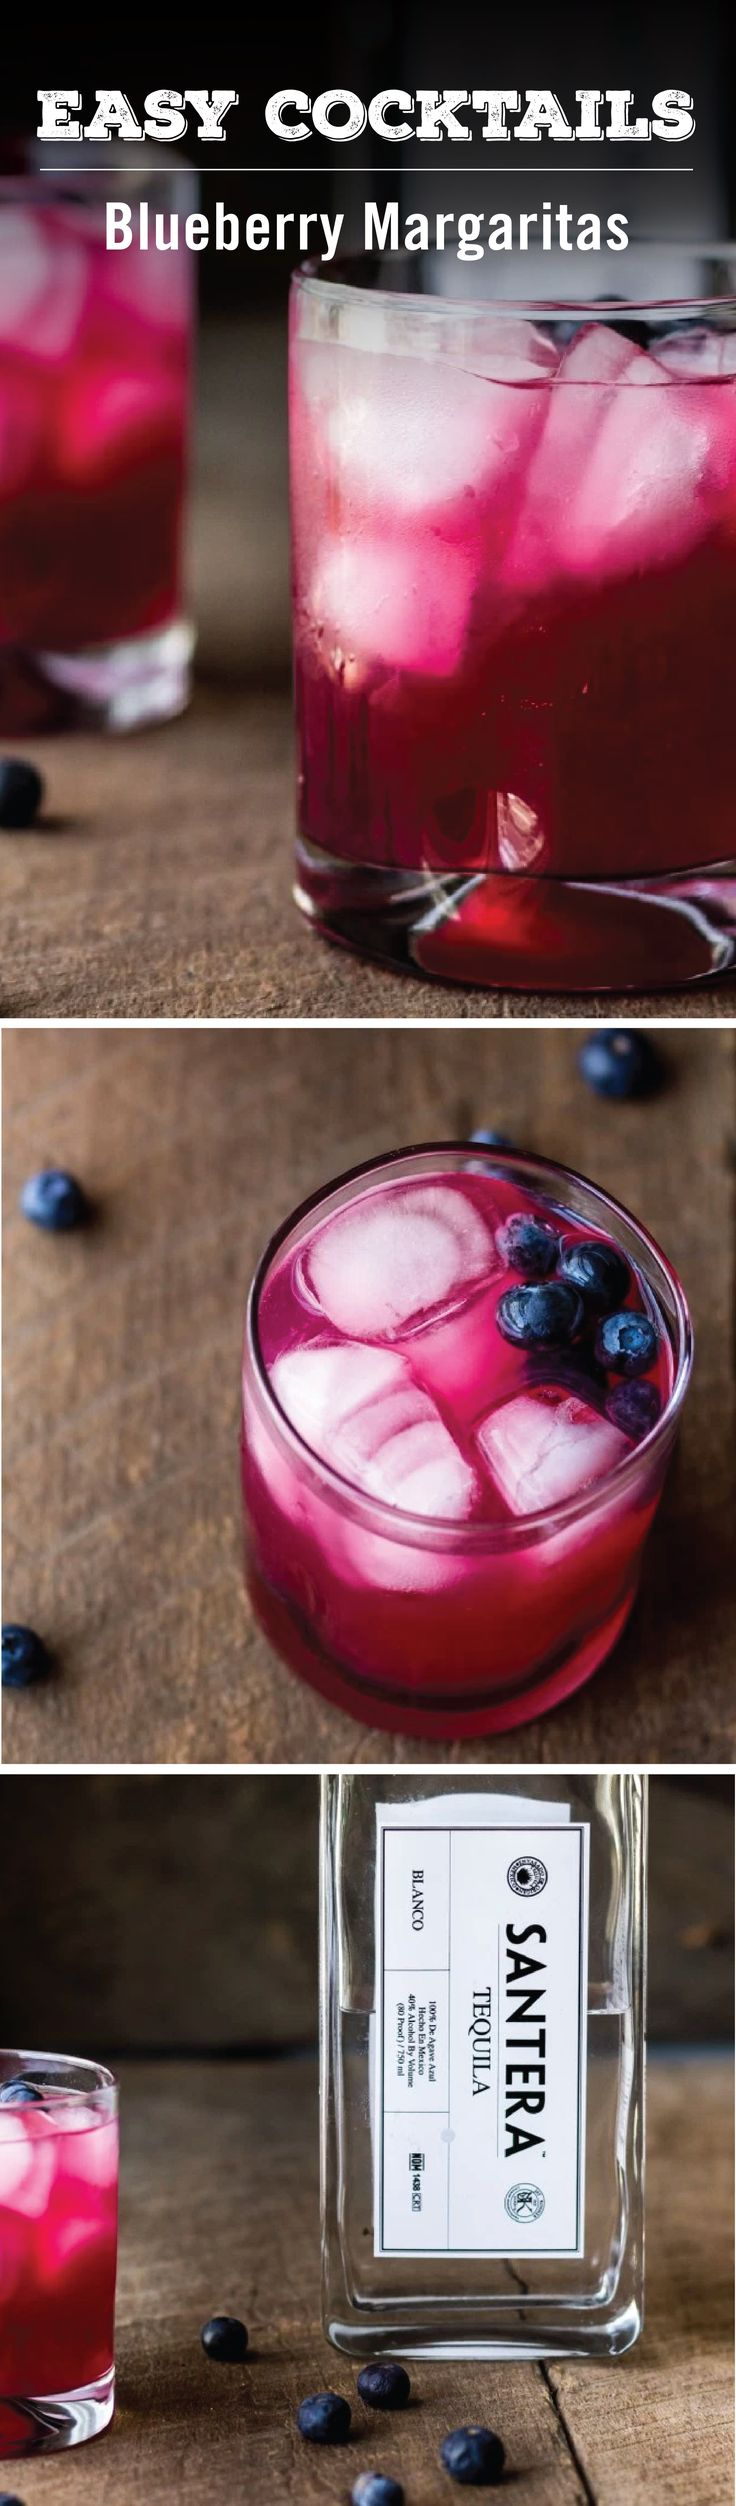 With one part tequila, one part lime juice, a splash of homemade blueberry simple syrup, and a finish of ice—not to mention a garnish of fresh blueberries— you've got the recipe for a delicious festive fruit cocktail. In our opinion this Blueberry Margarita is the perfect party drink.